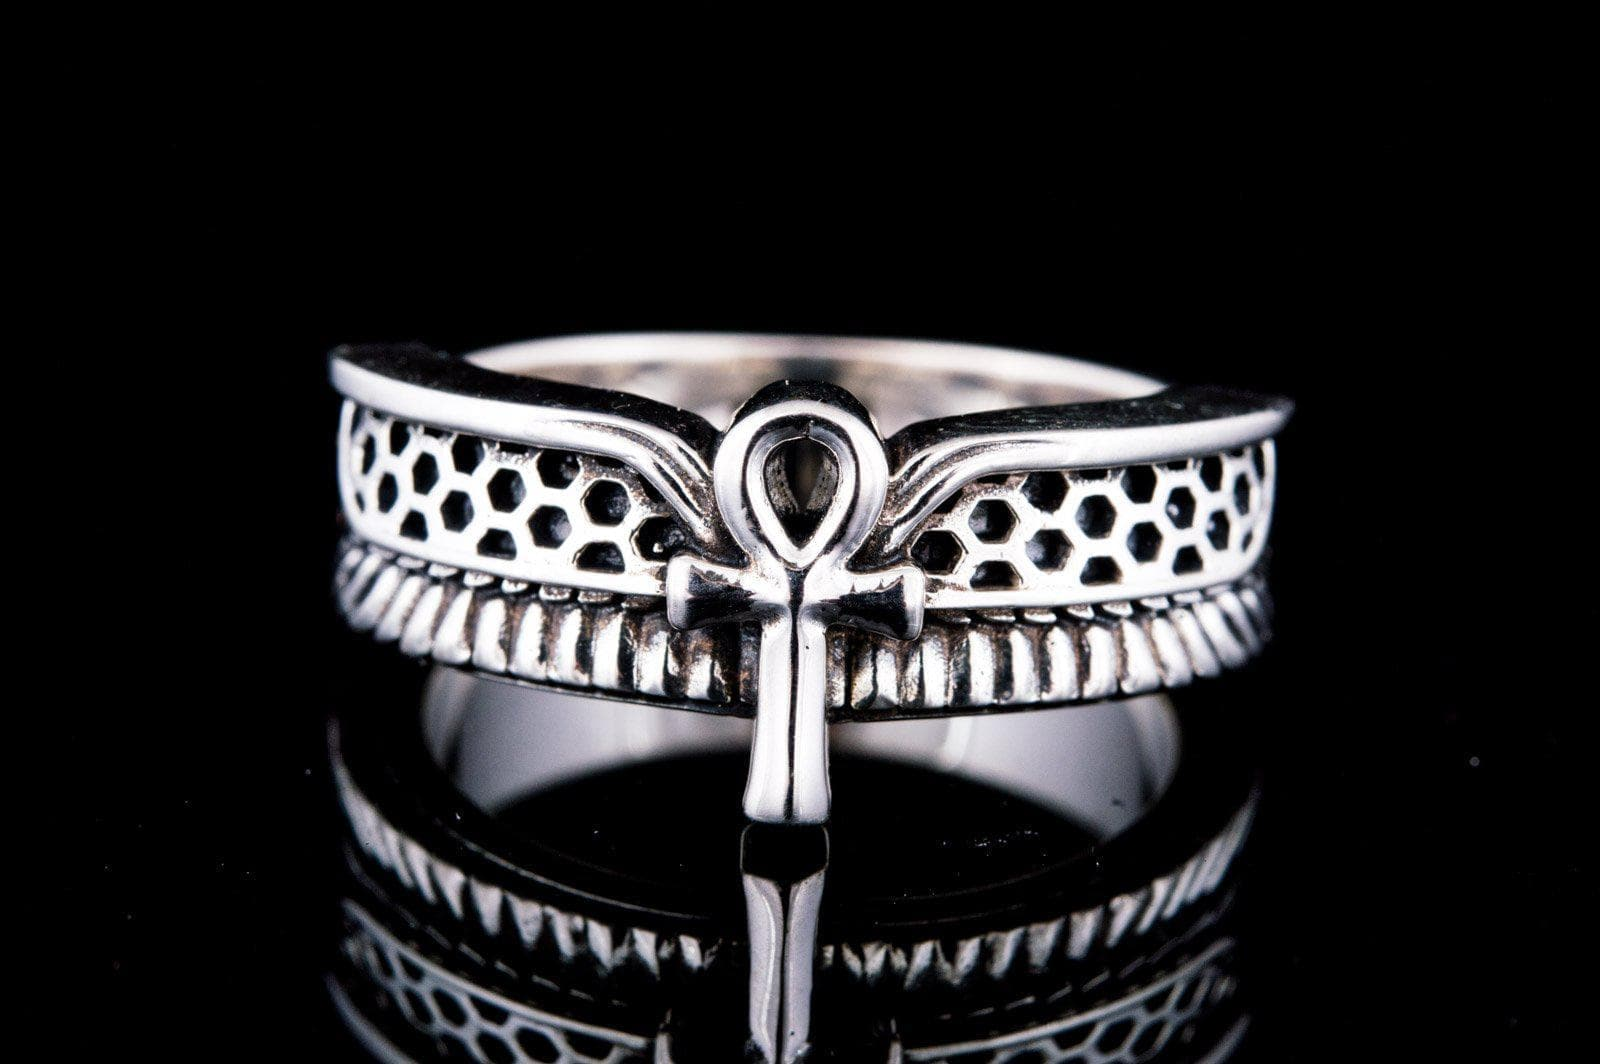 Rings Ancient Egypt Perforated Winged Ankh Sterling Silver Ring Ancient Treasures Ancientreasures Viking Odin Thor Mjolnir Celtic Ancient Egypt Norse Norse Mythology